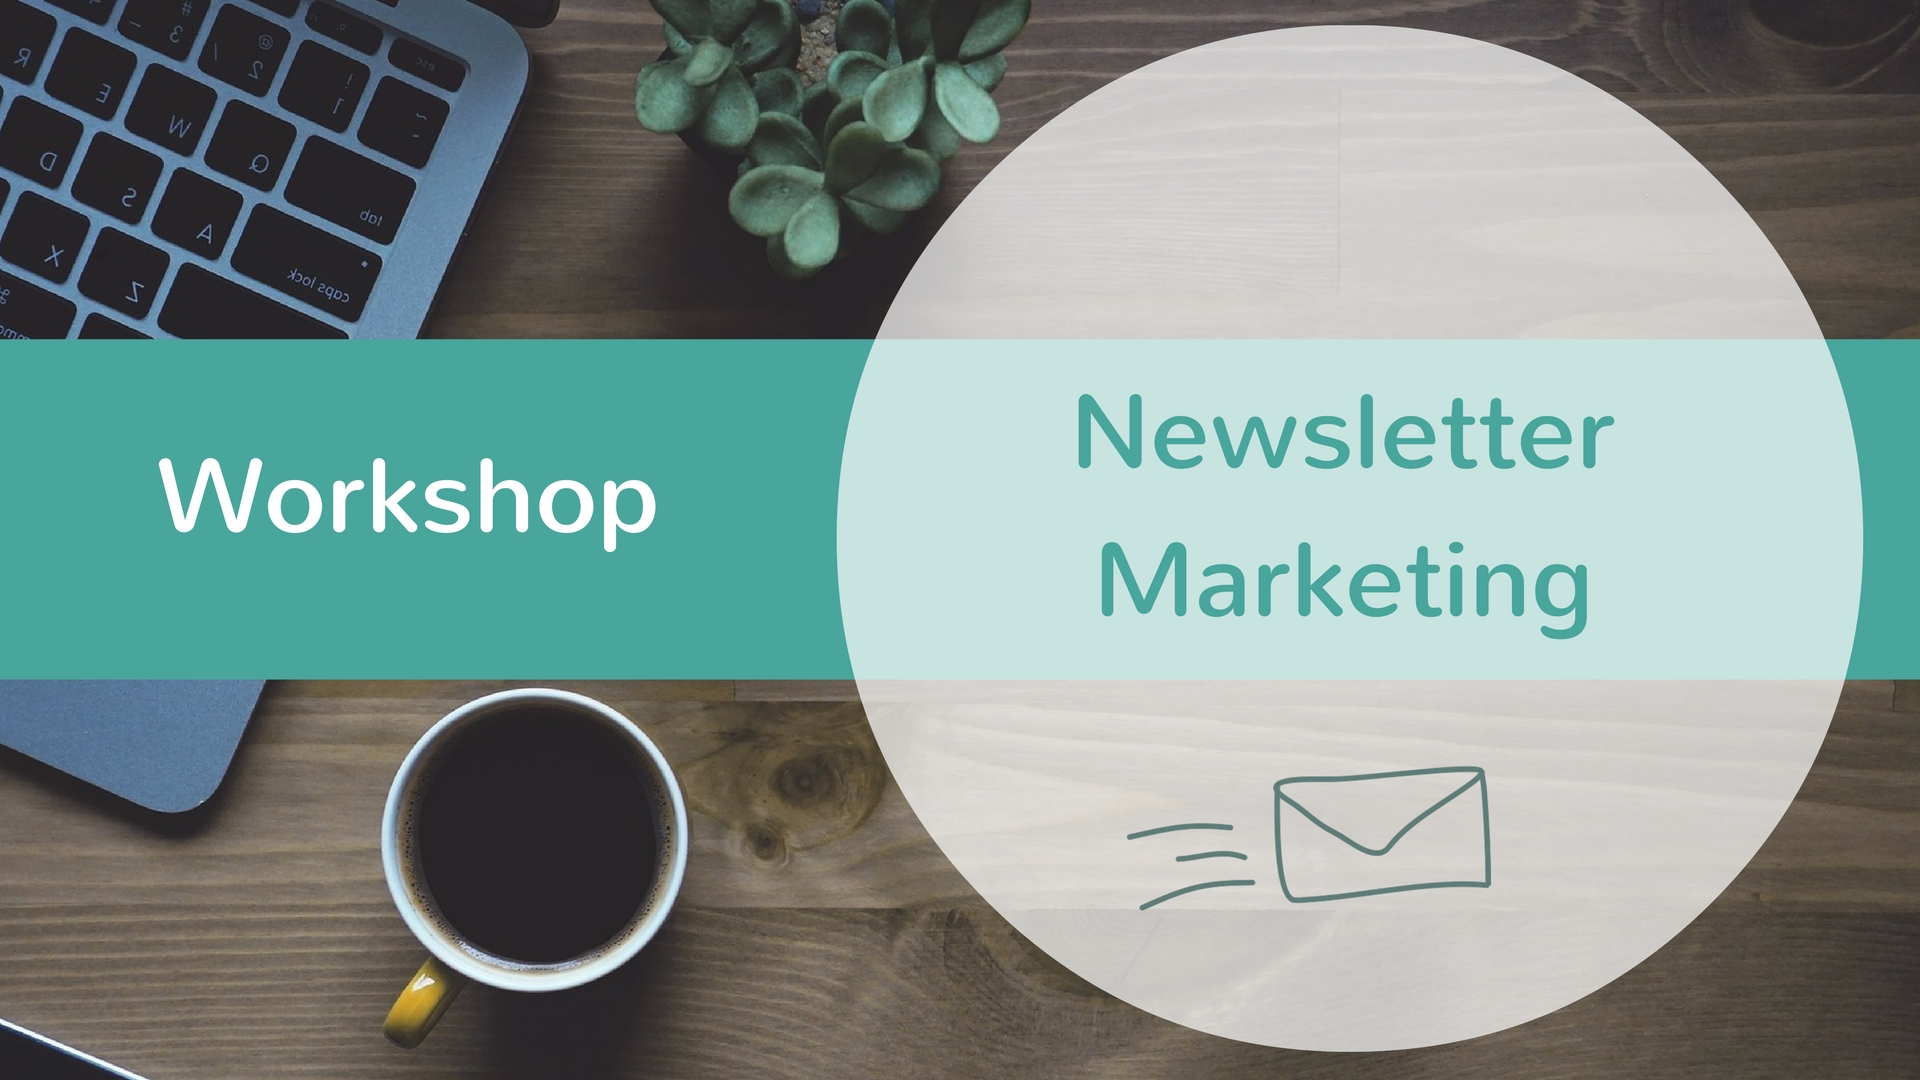 Workshop-Newsletter-Marketing